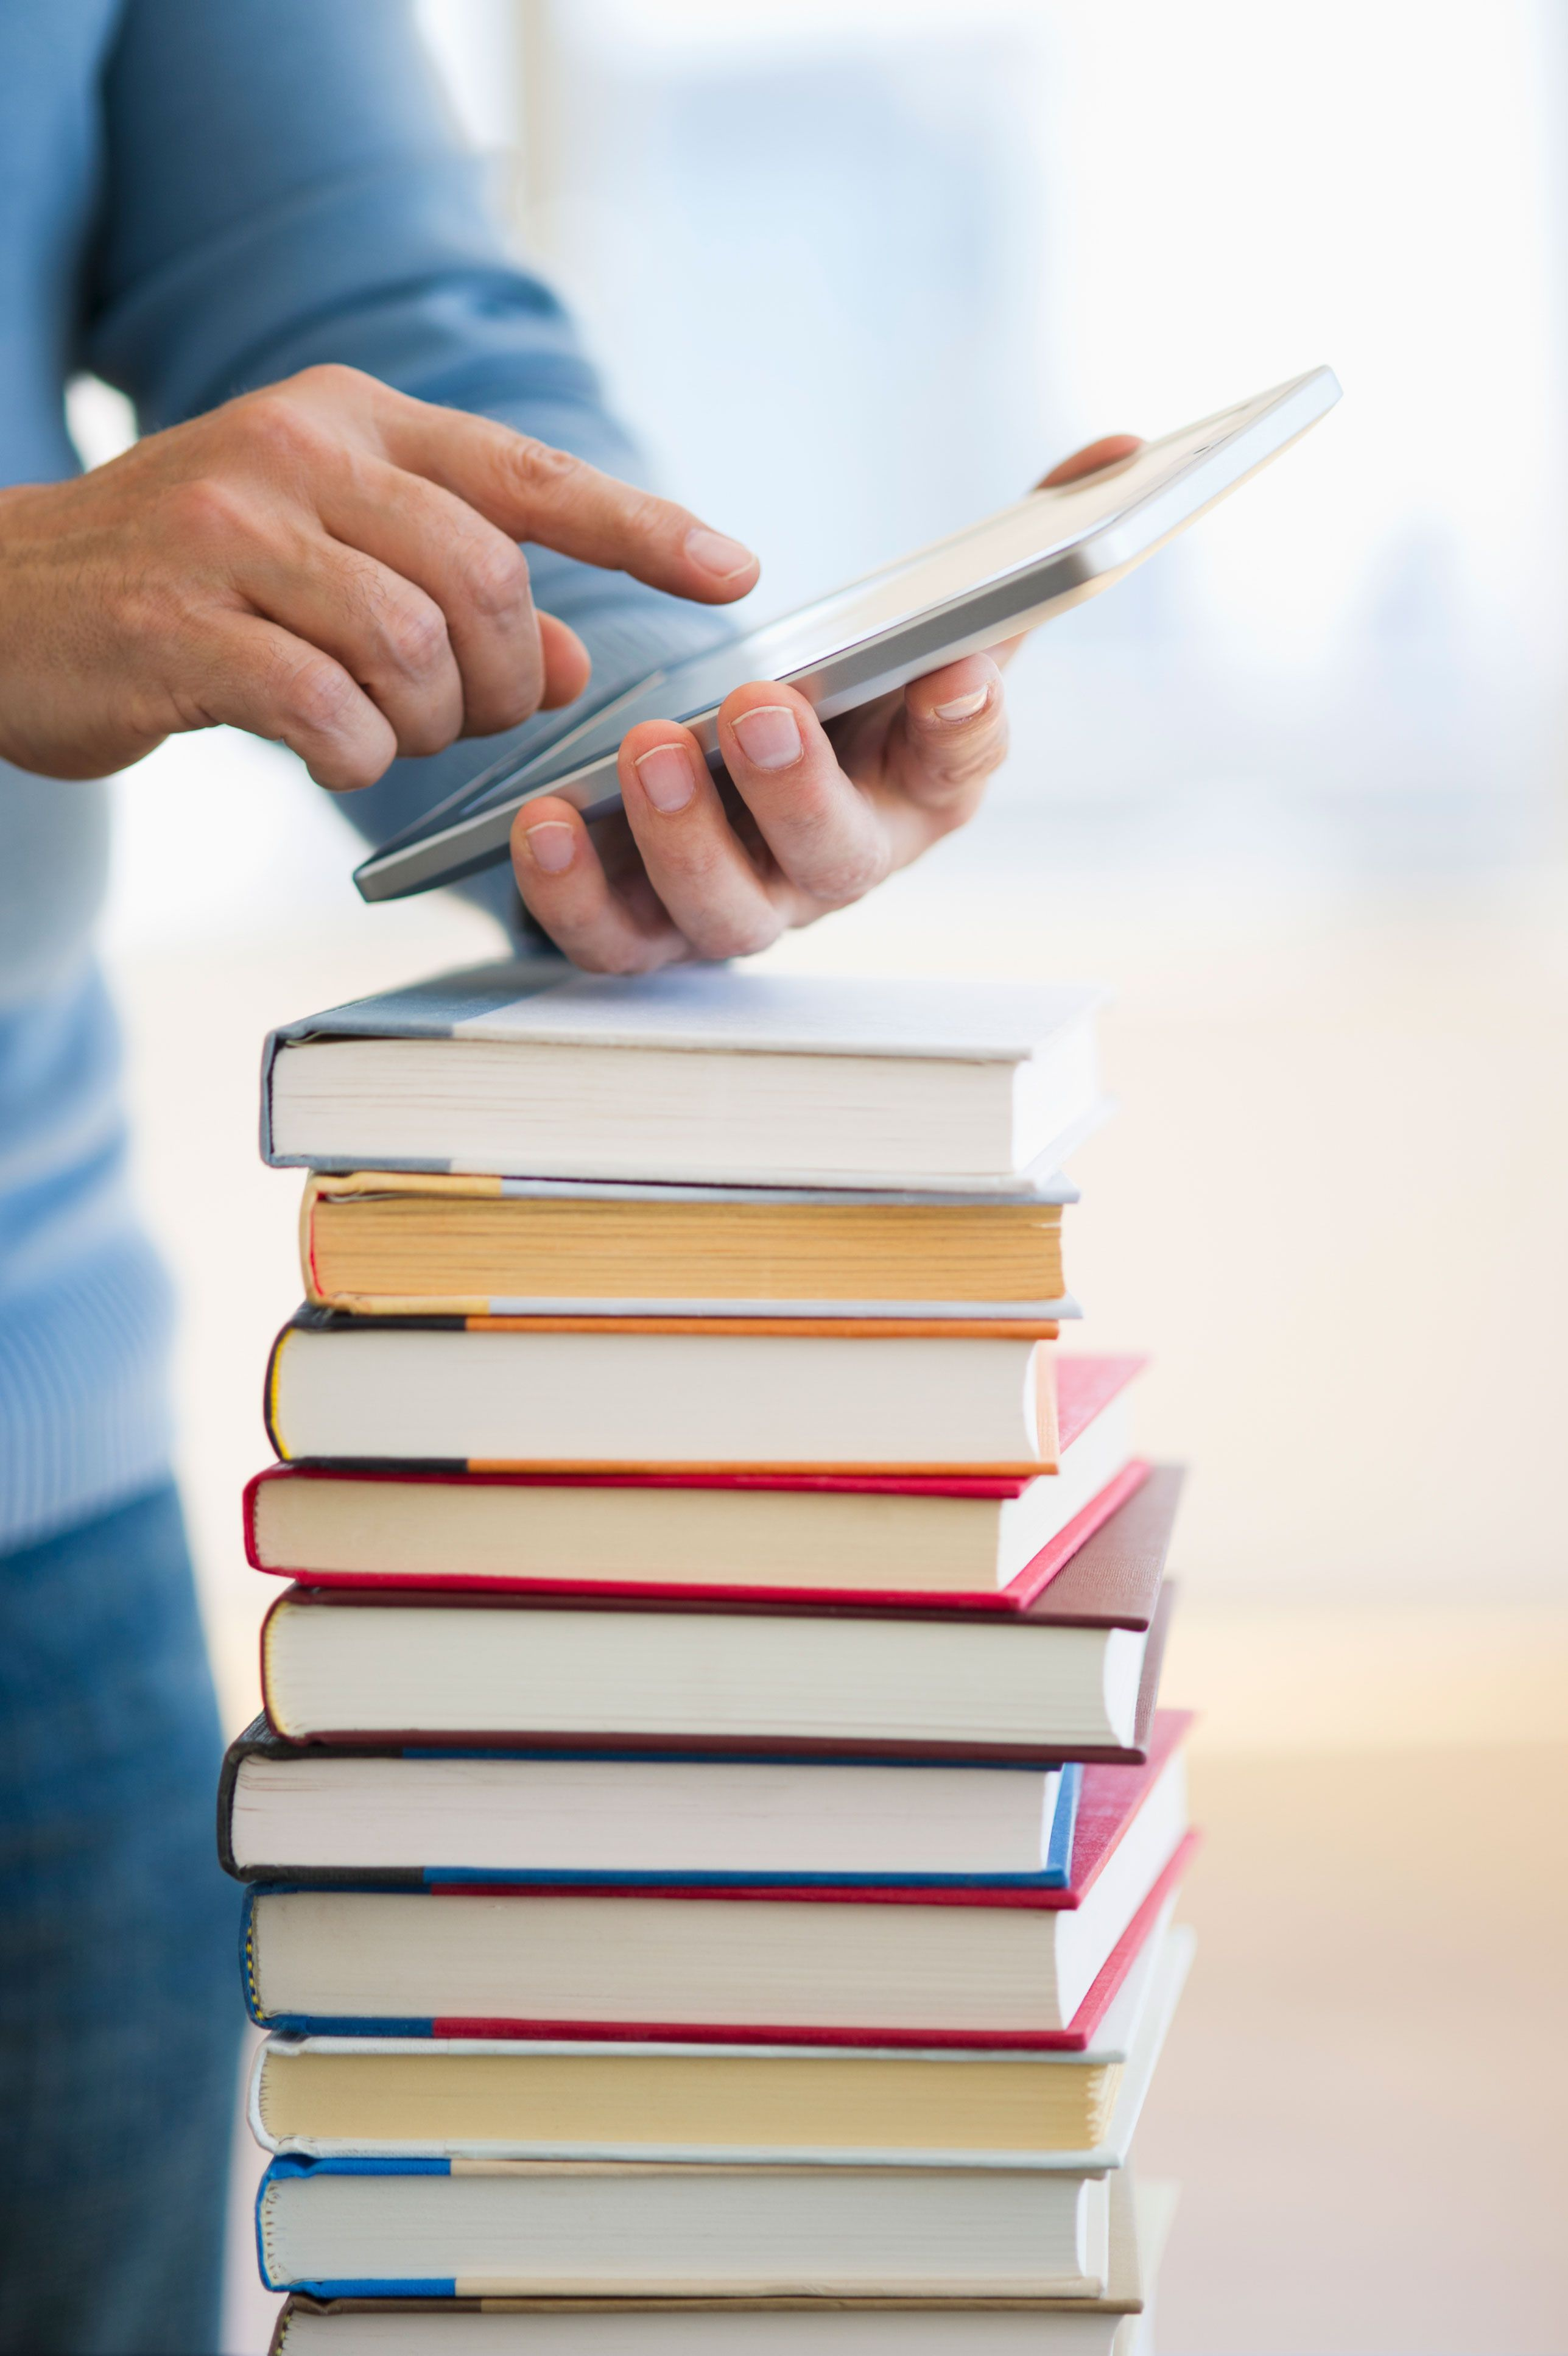 man using a smartphone with a stack of books